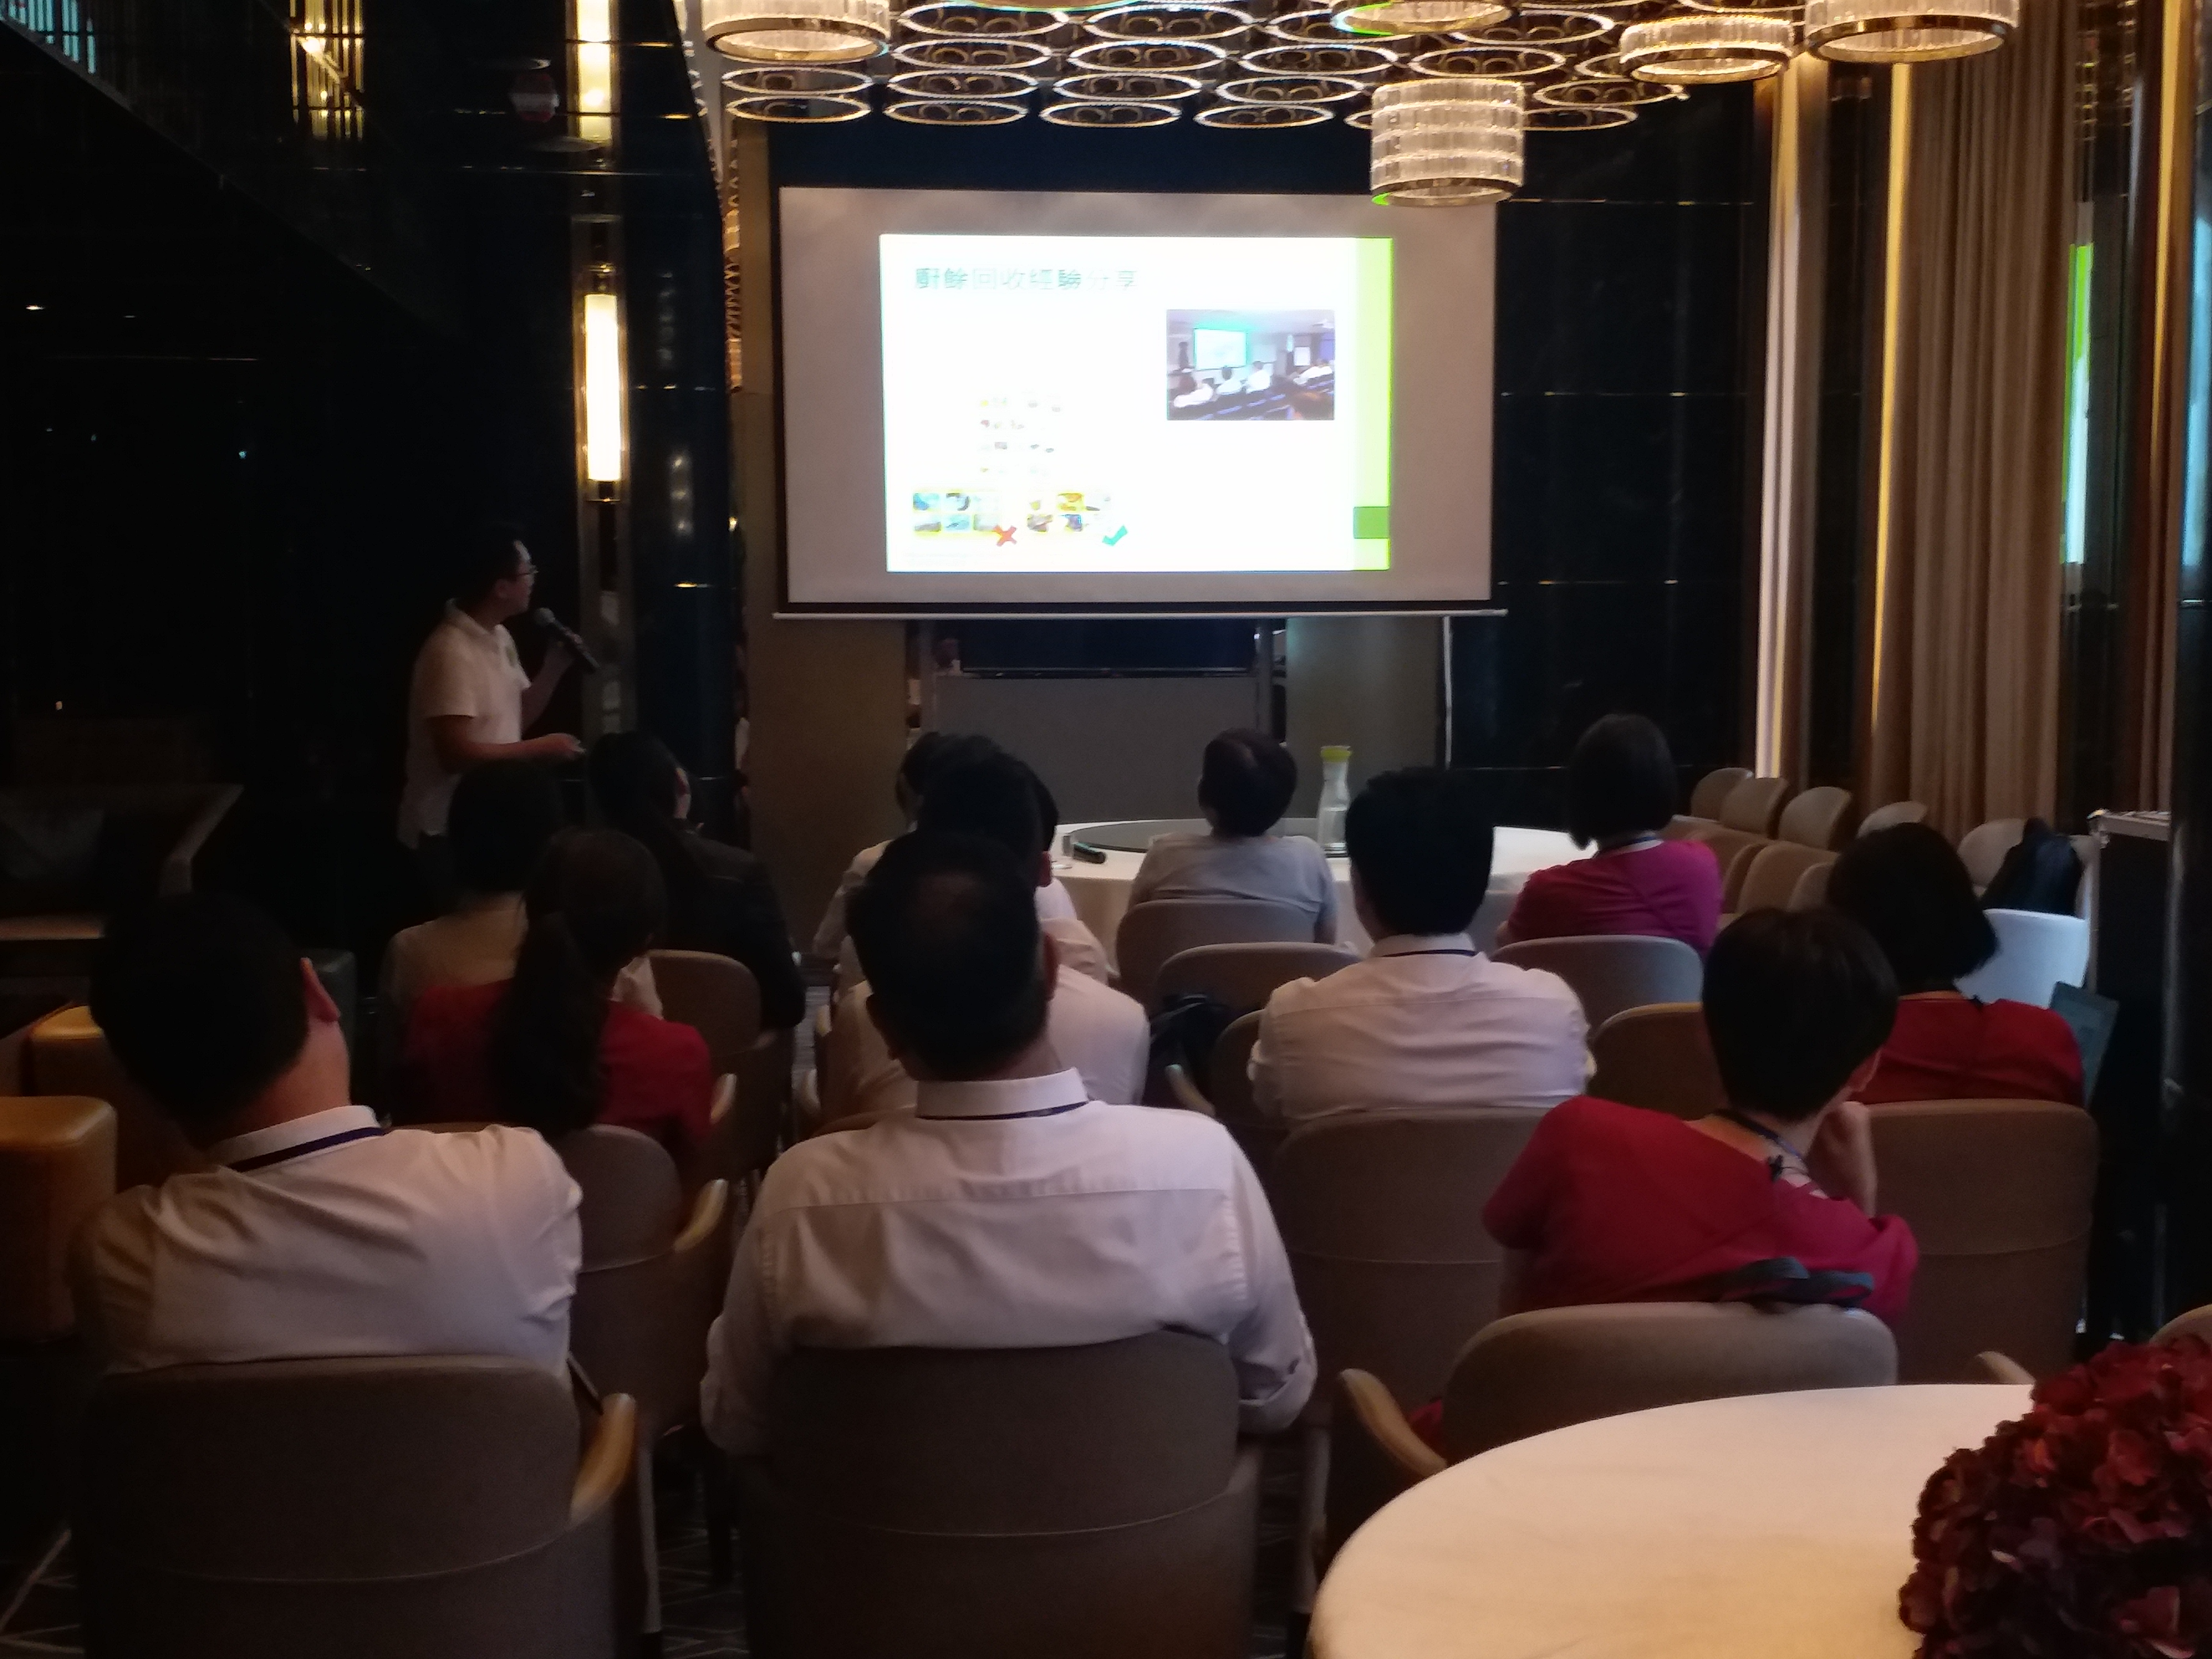 Speaker shared experience of food waste recycling with participants in the talk